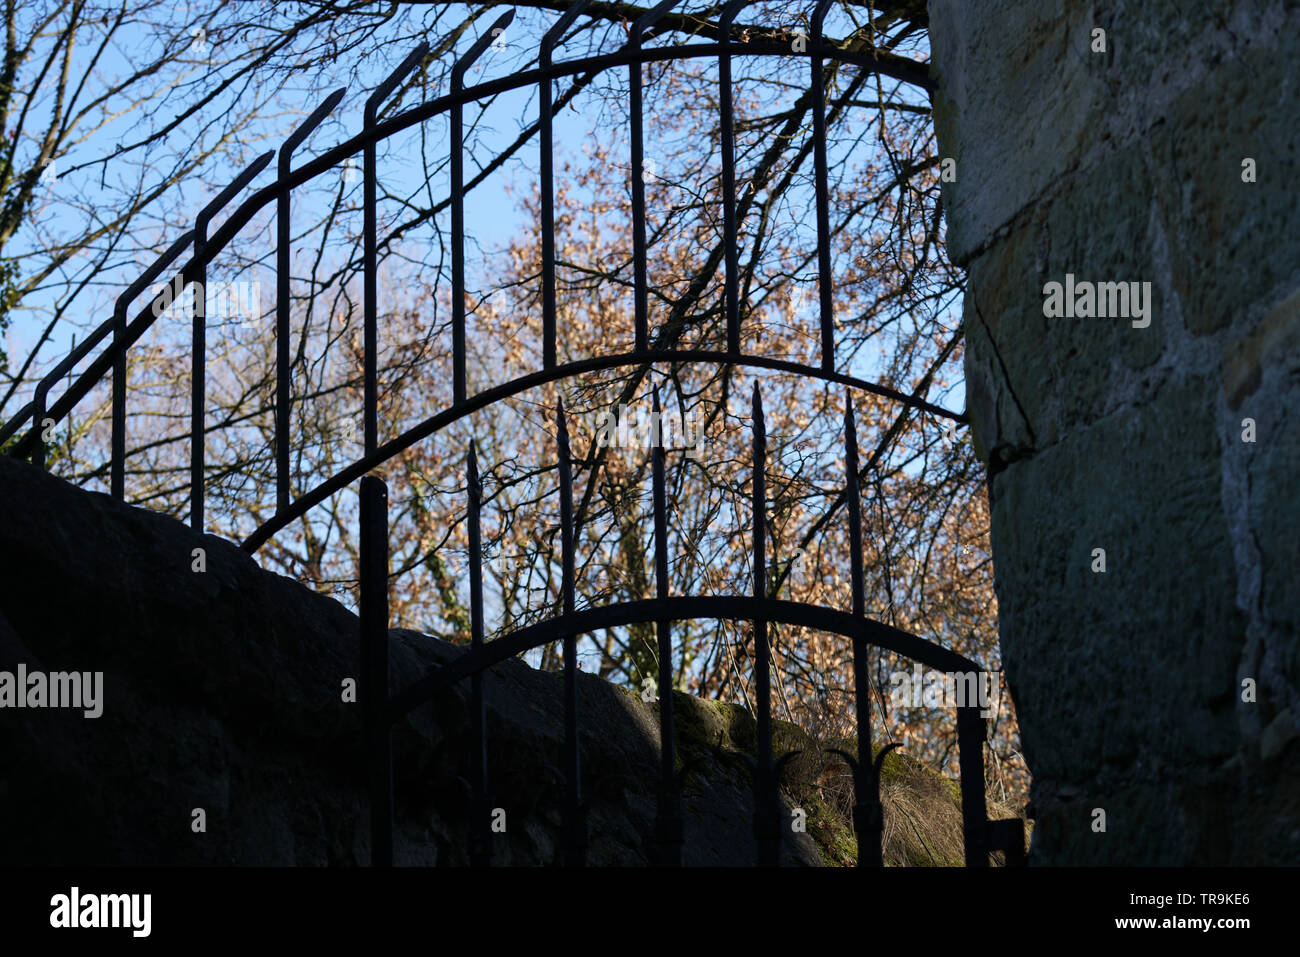 Mysterious mystical places in a park in Germany - Stock Image